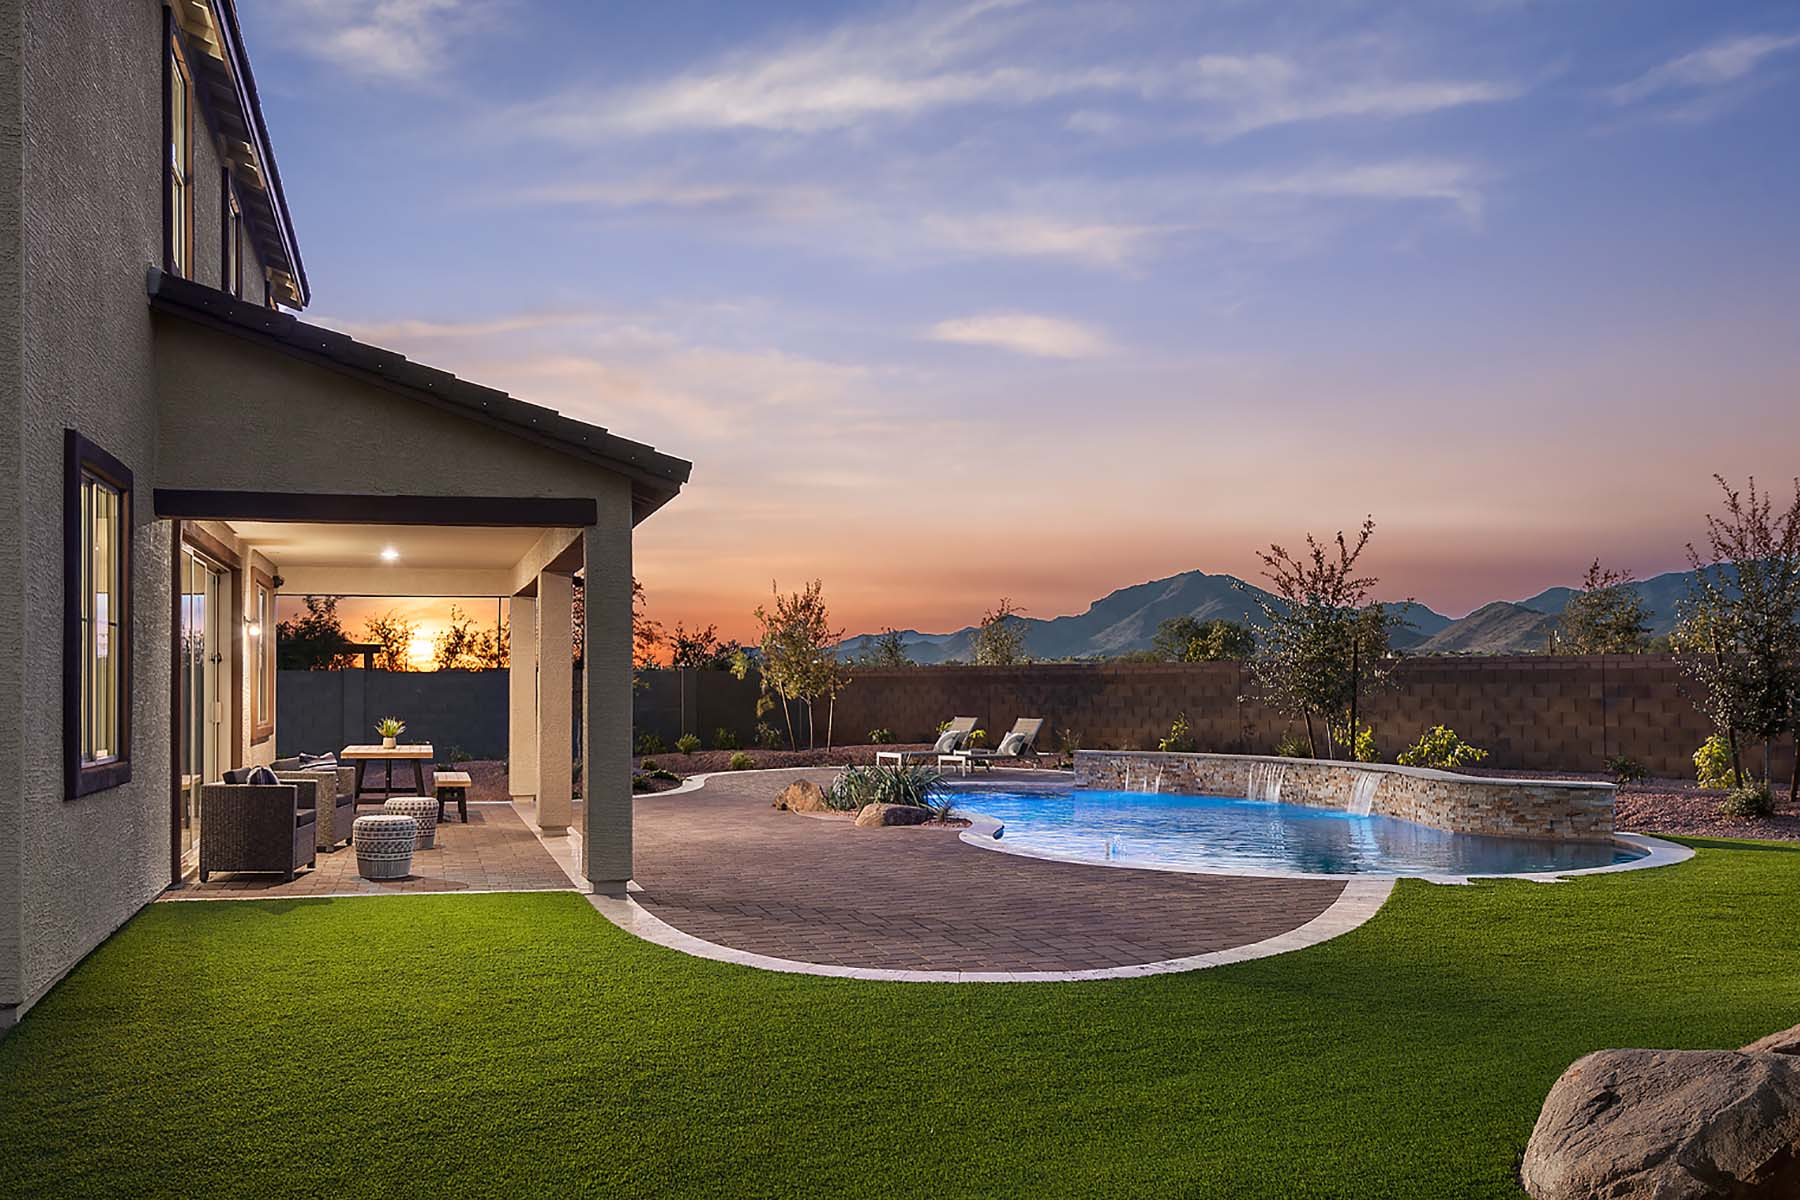 Willowleaf Plan Elevation Back Side at Brookside at Arroyo Seco in Buckeye Arizona by Mattamy Homes